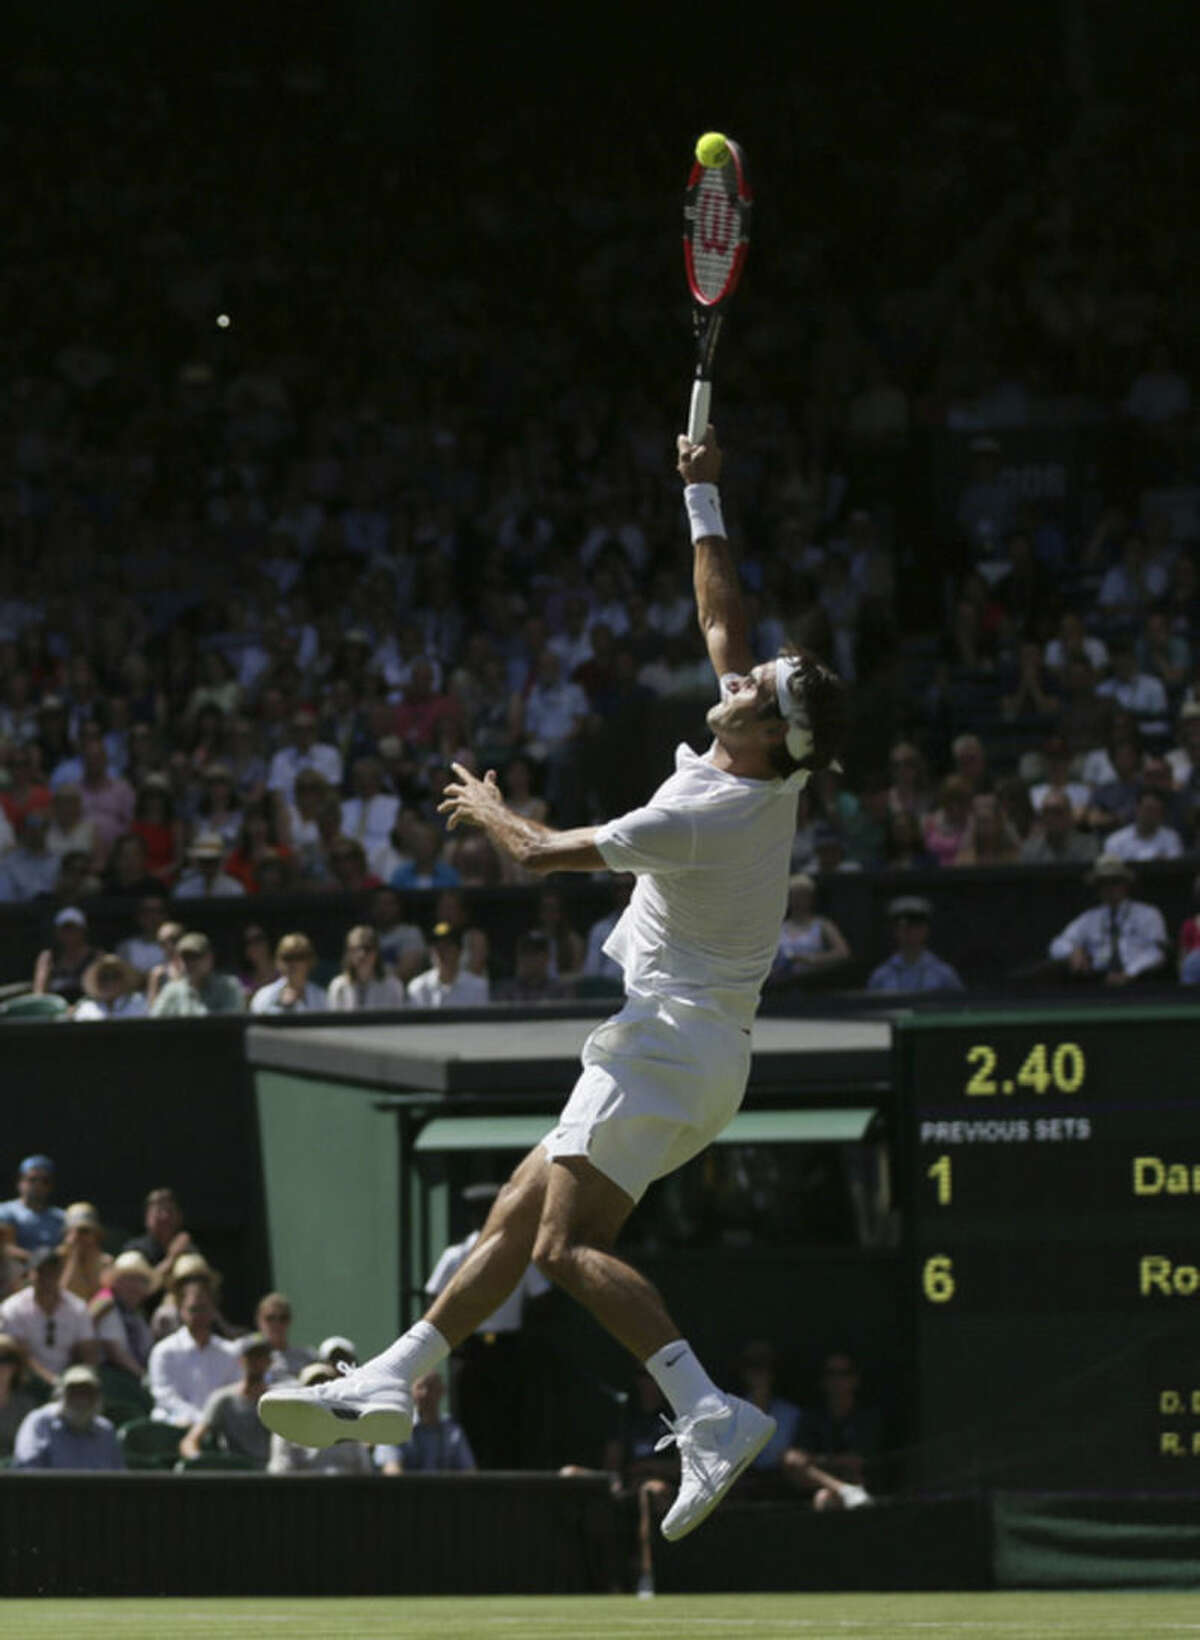 Roger Federer of Switzerland smashes a ball to Damir Dzumhur of Bosnia during the singles first round match at the All England Lawn Tennis Championships in Wimbledon, London, Tuesday June 30, 2015. (AP Photo/Tim Ireland)